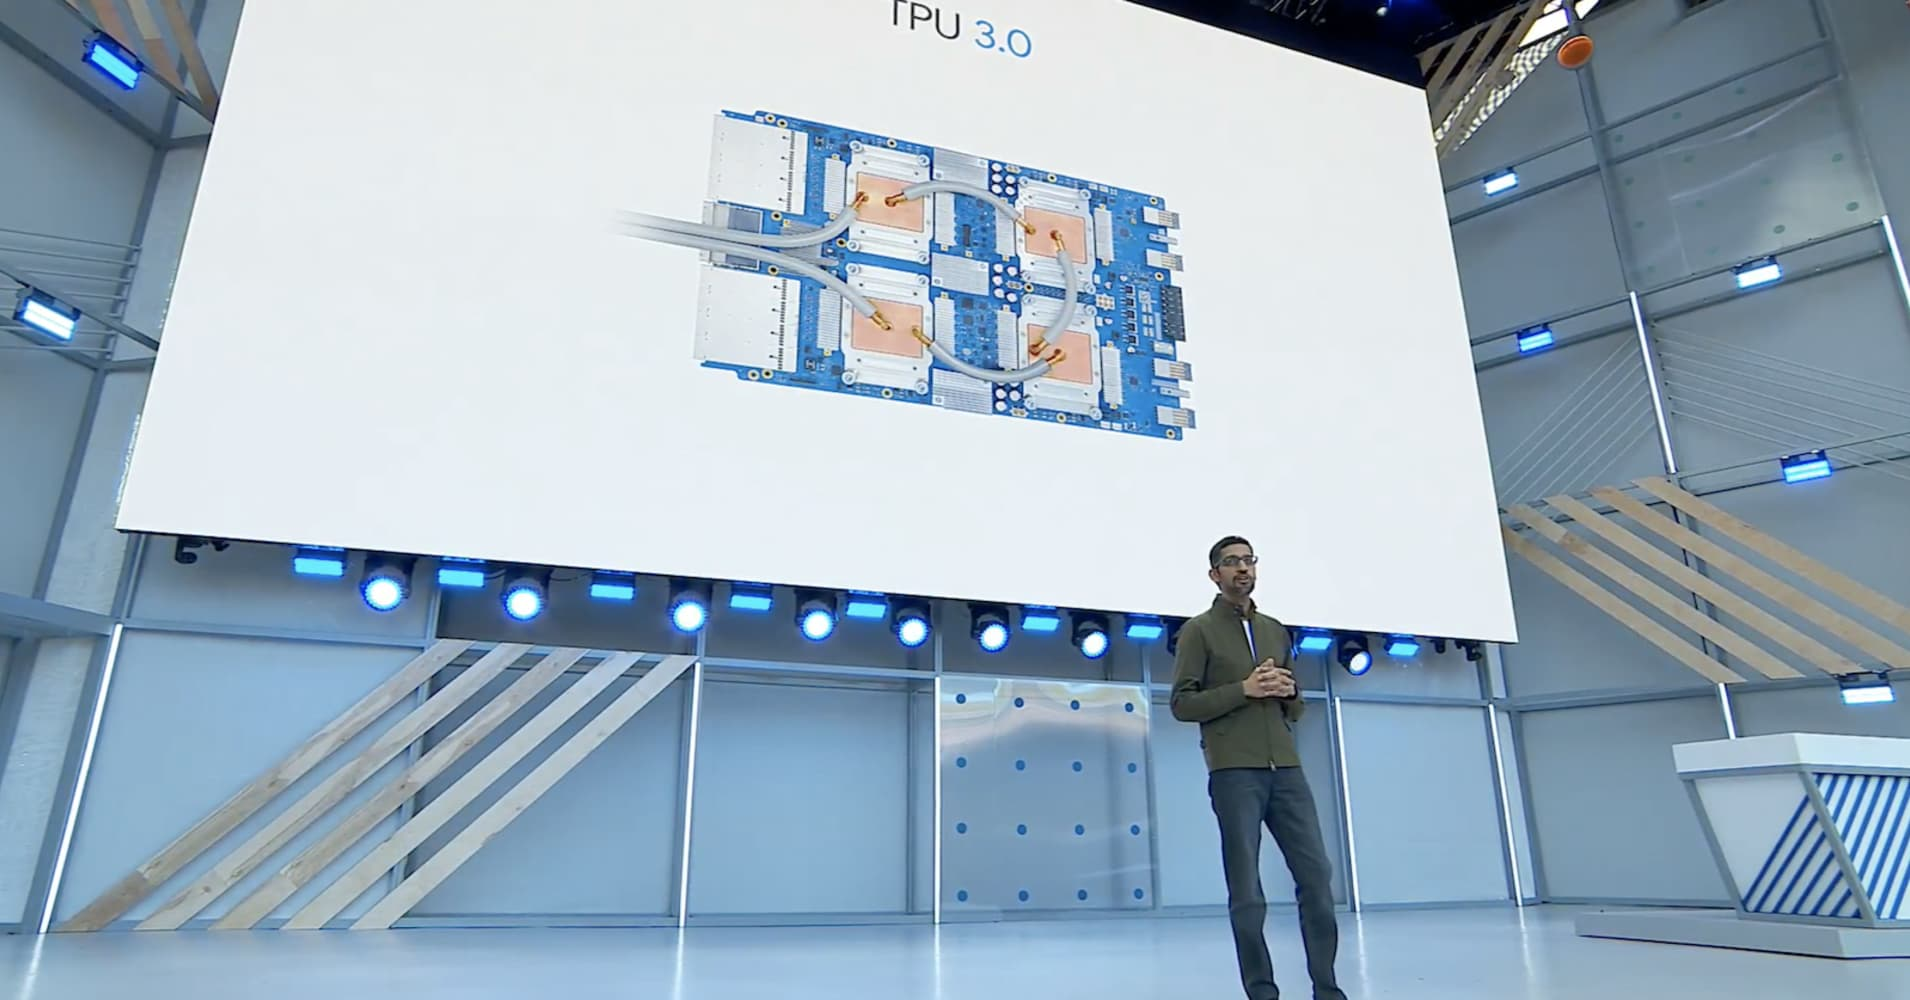 Google launches the third version of its A.I. chips, an alternative to Nvidia's